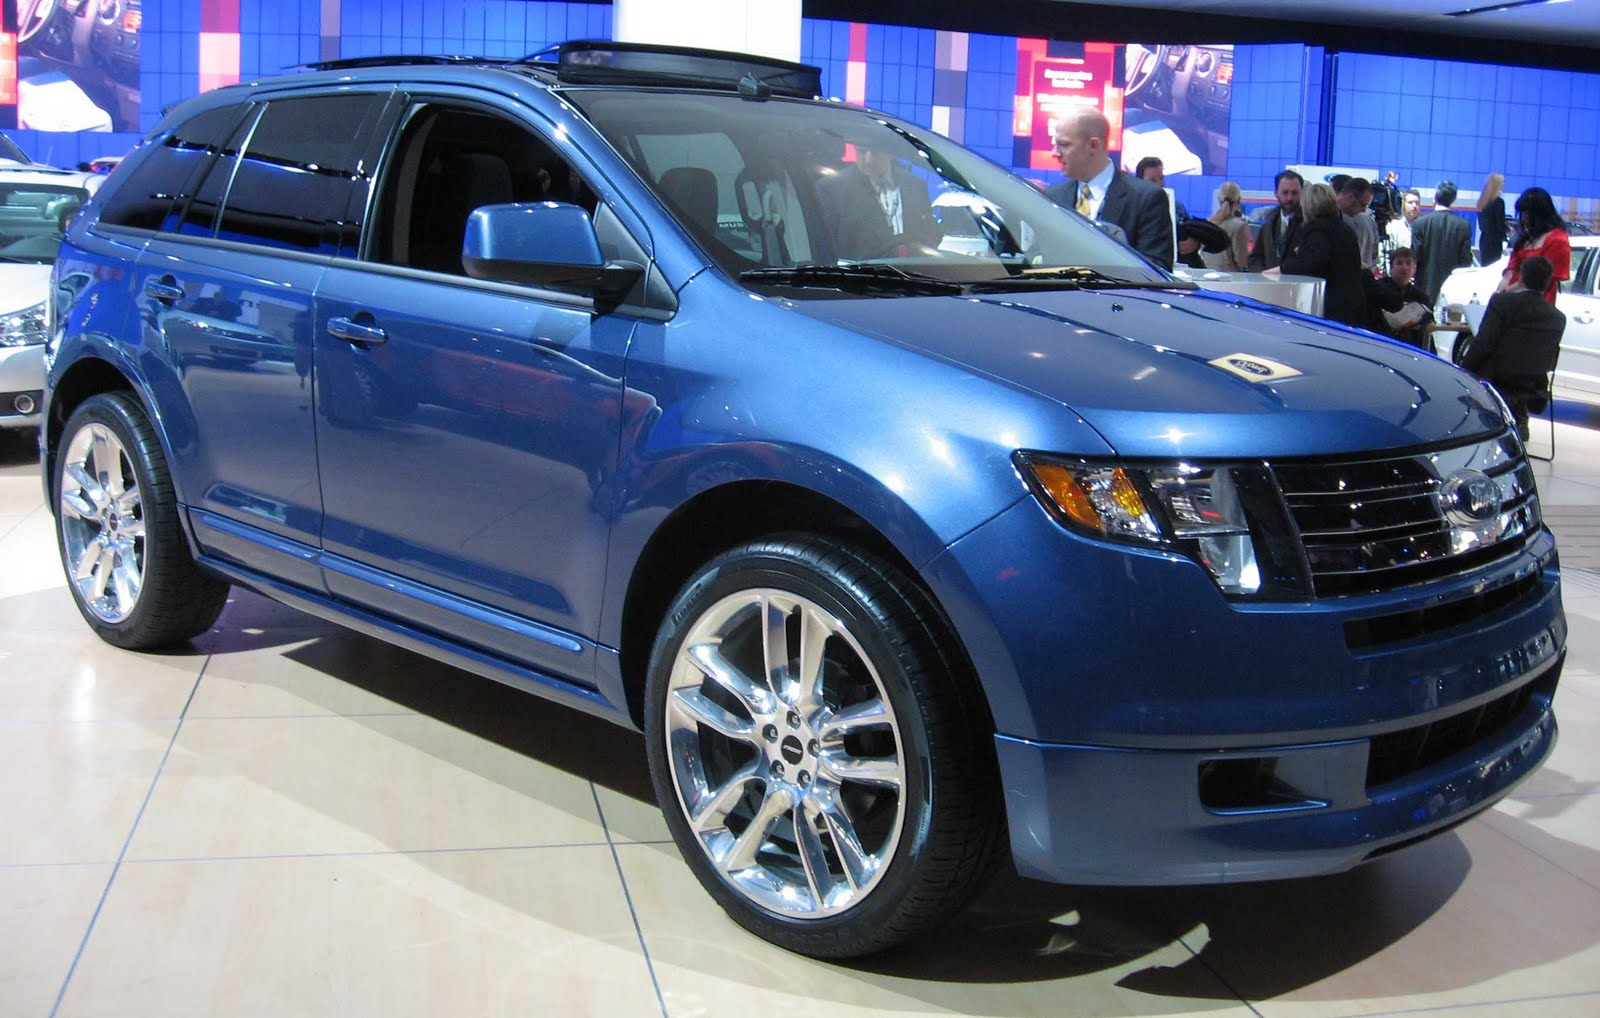 The world sports cars: custom ford edge